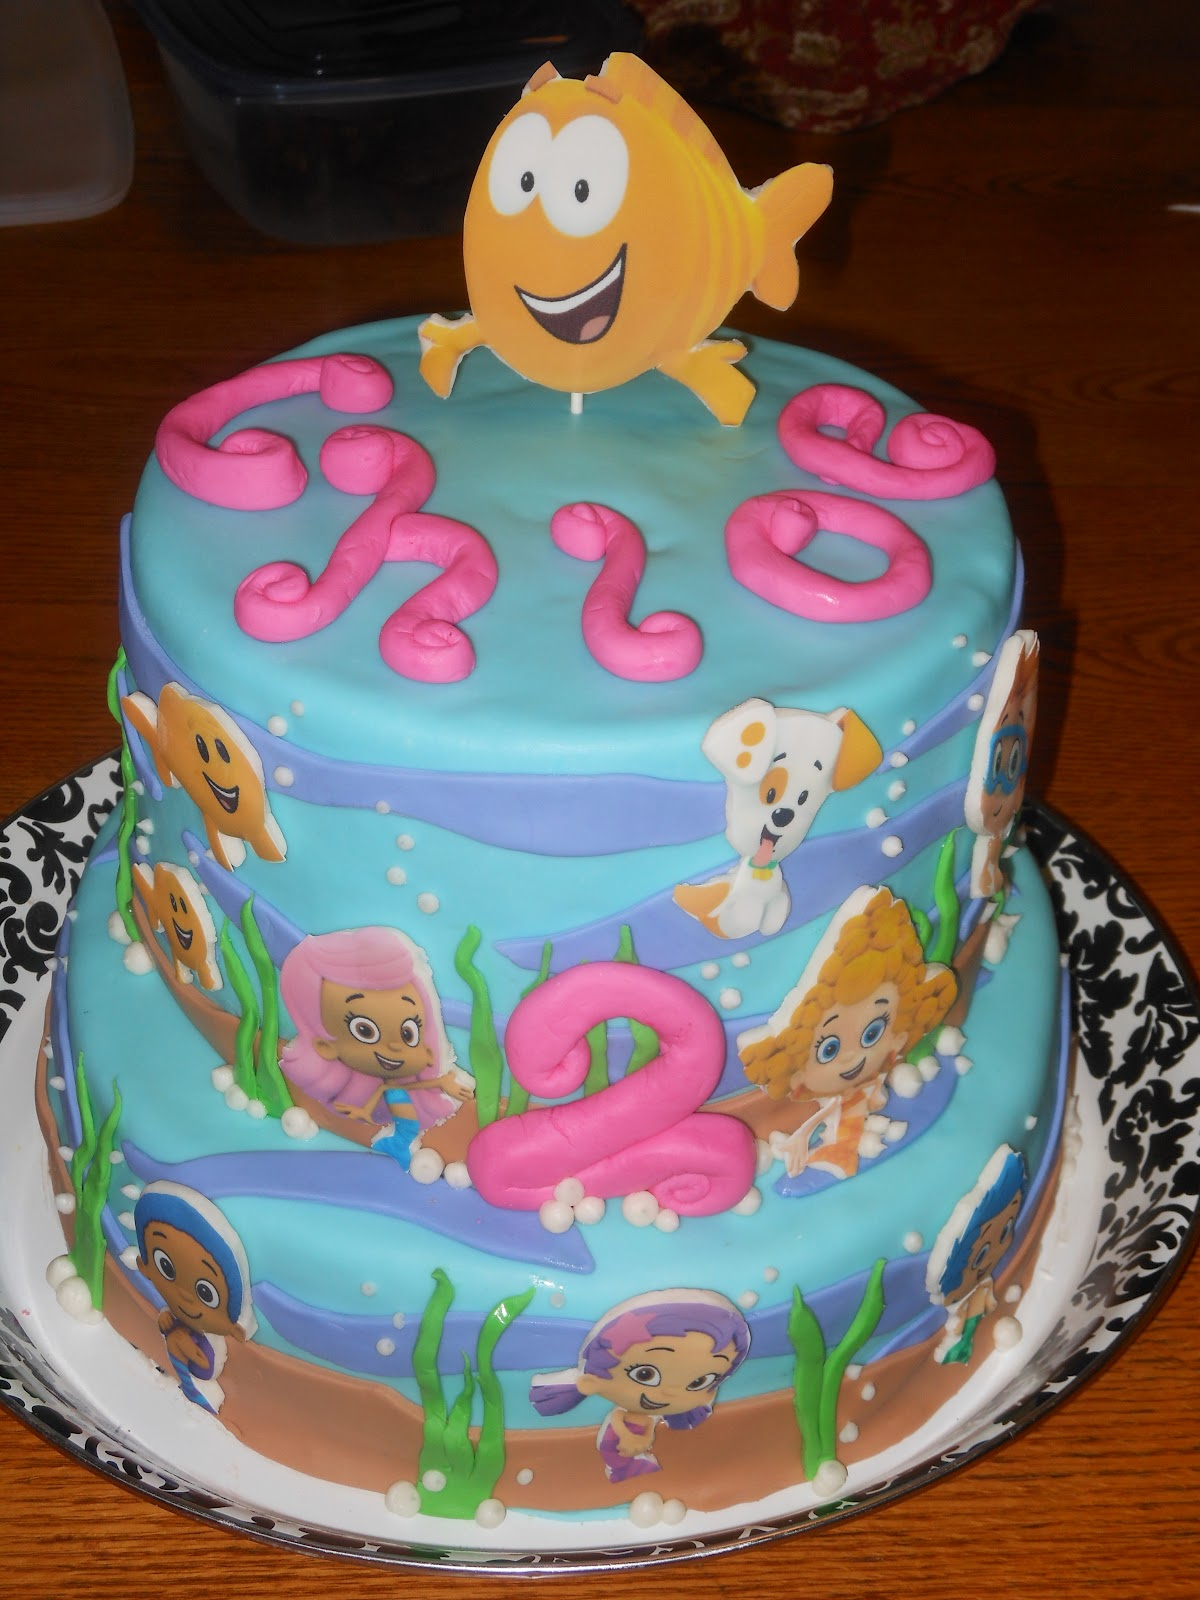 Cake Designs By Patty : PATTY CAKES: Bubble Guppies Cake